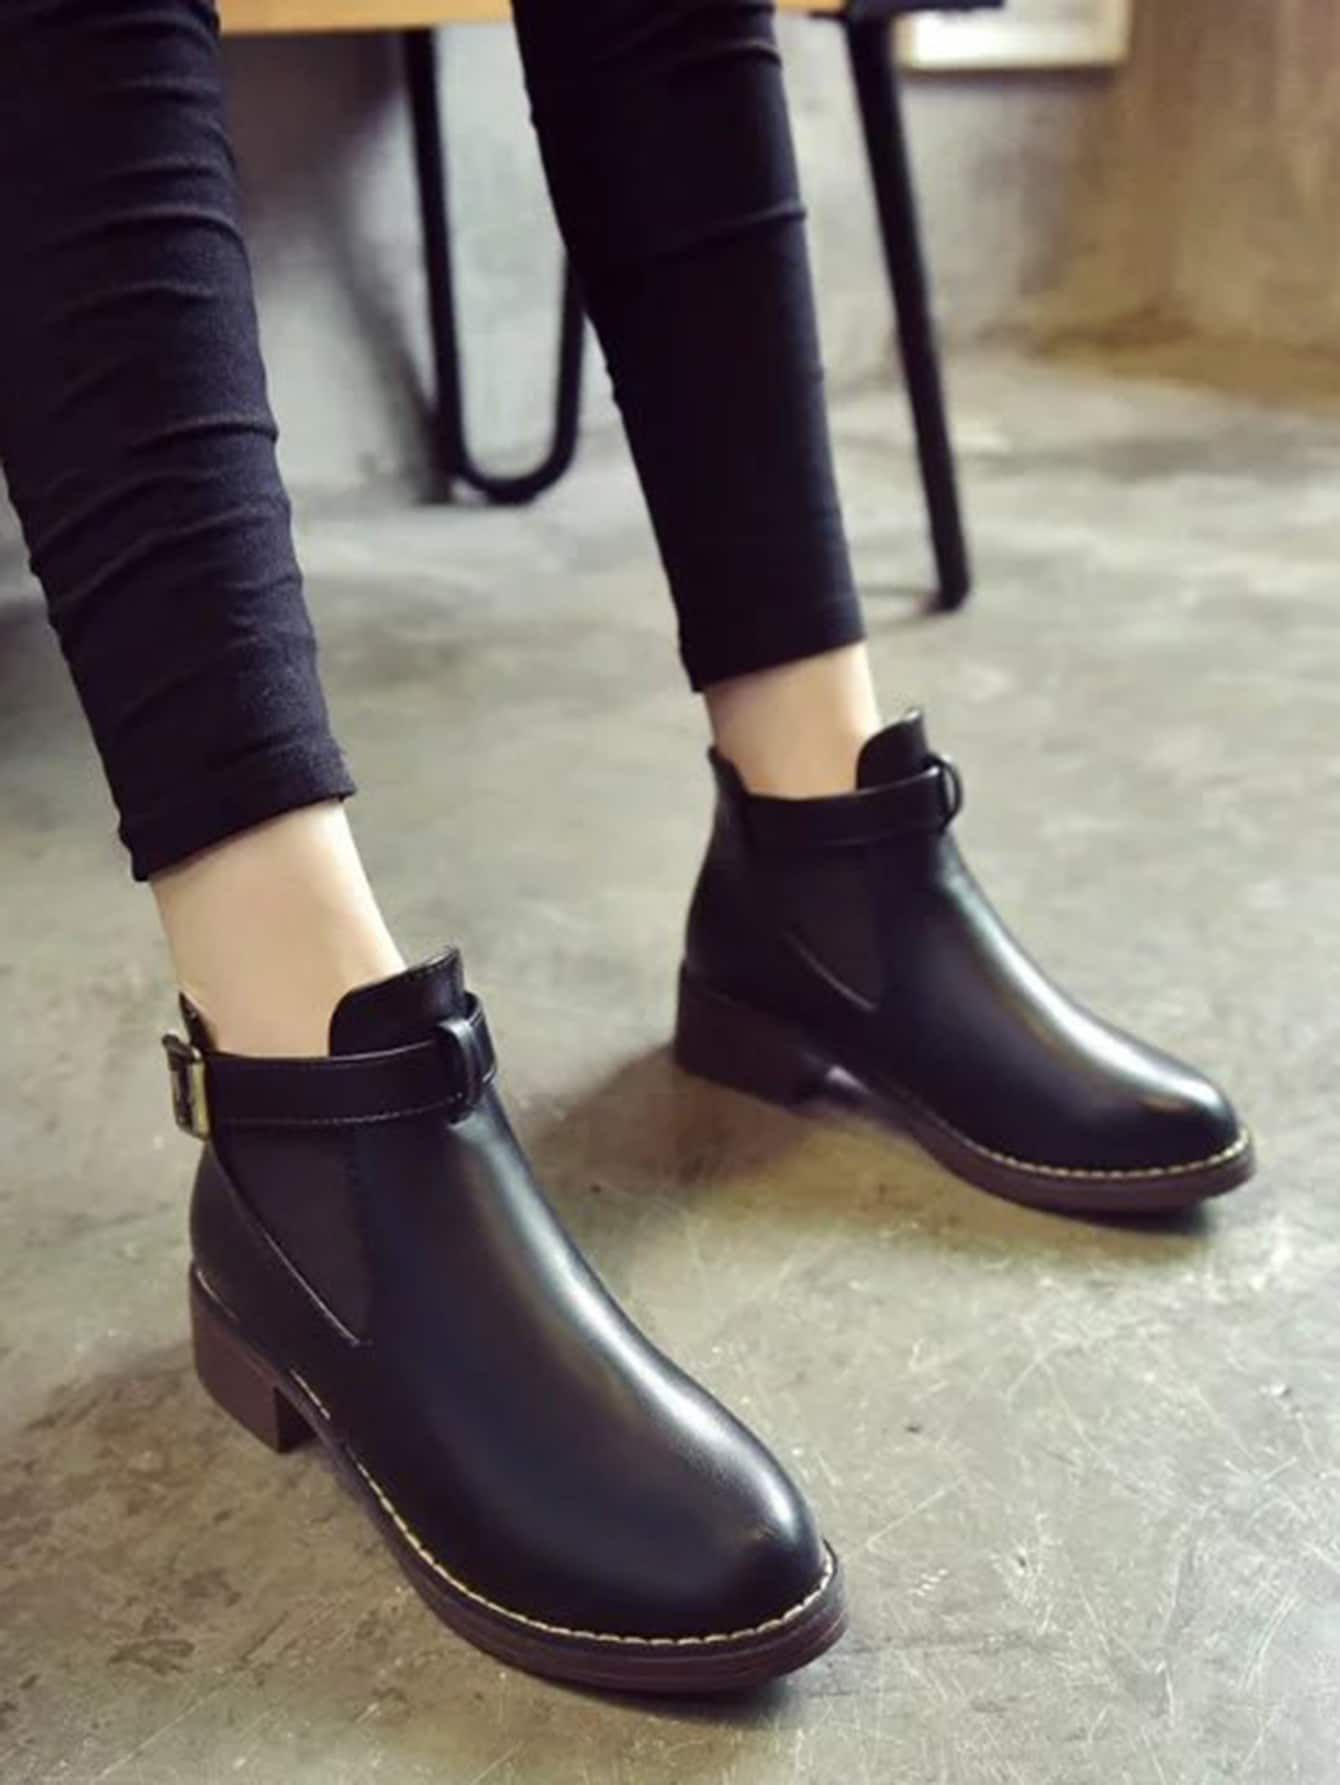 a924cb0ceee0 Casual Round Toe Ankle No zipper Black Mid Heel Chunky Side Buckle PU  Elastic Ankle Boots